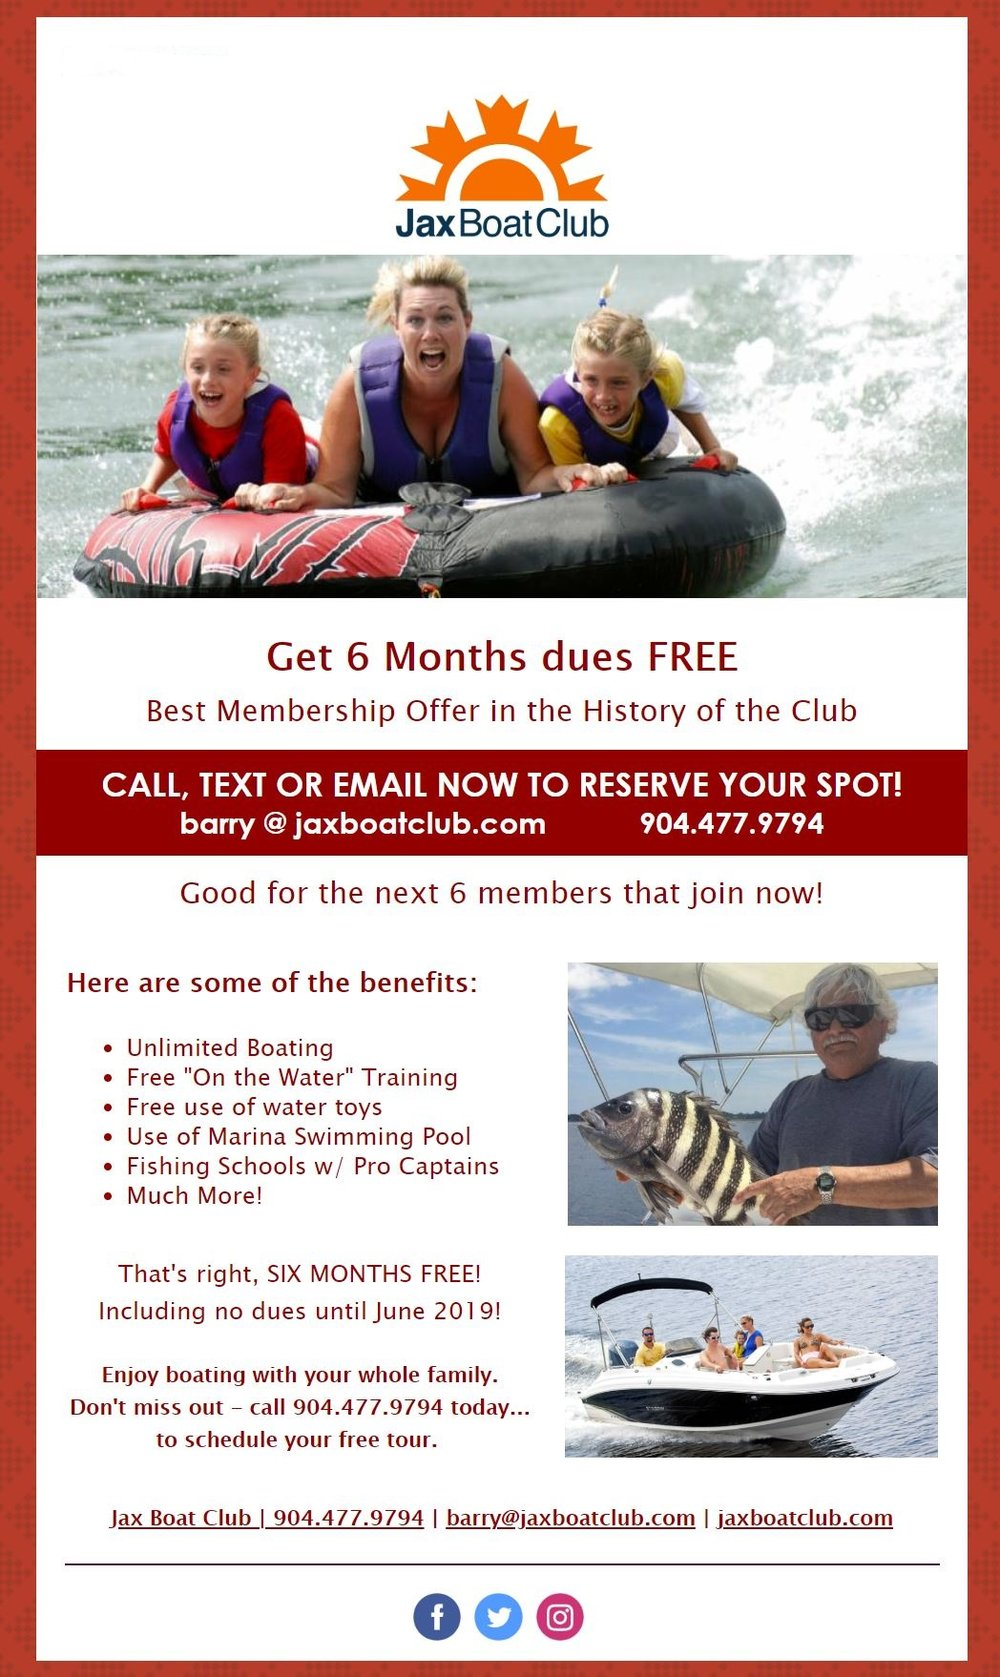 Our flyer for 6 months dues free if you join now (next 6 members)